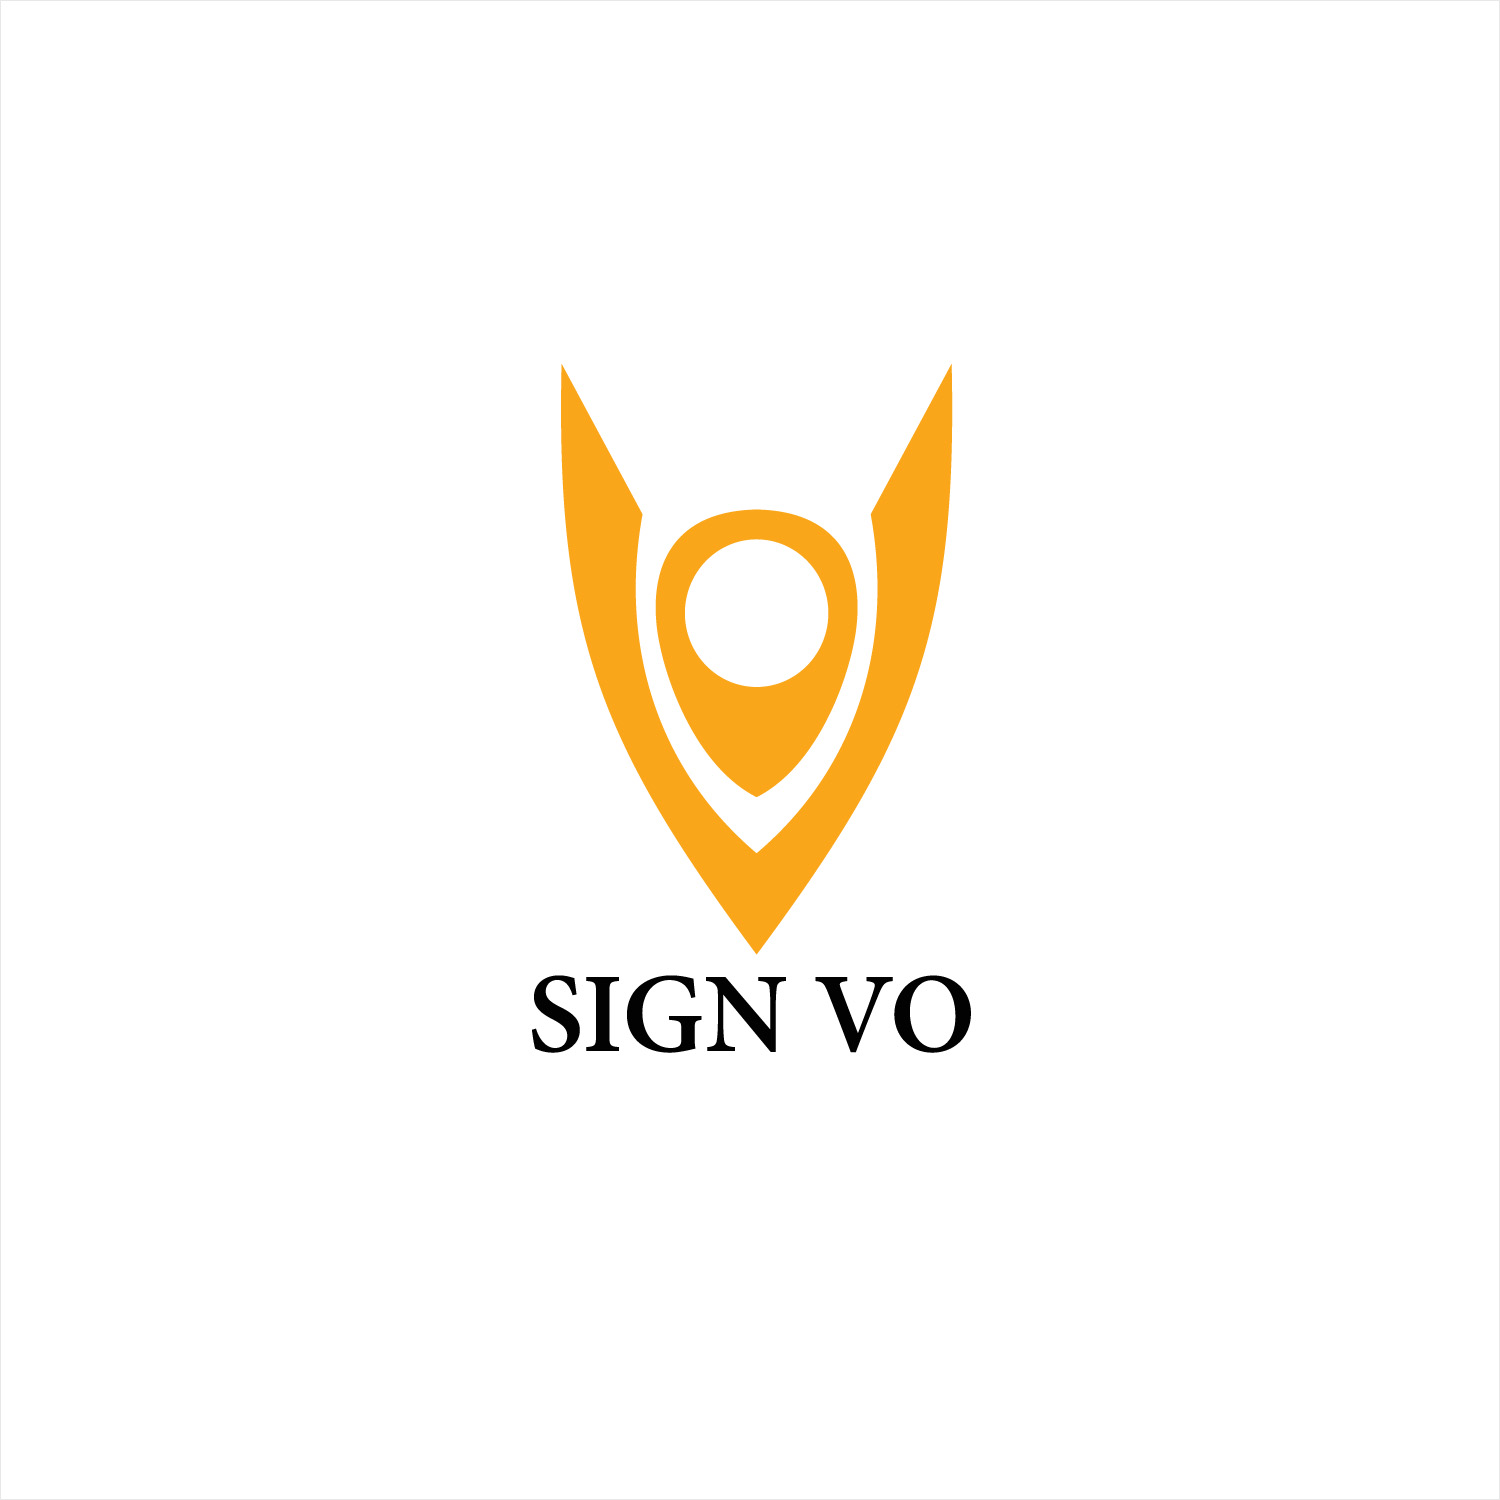 Serious, Modern, Digital Signage Logo Design for SignVO by Weil Jong ...